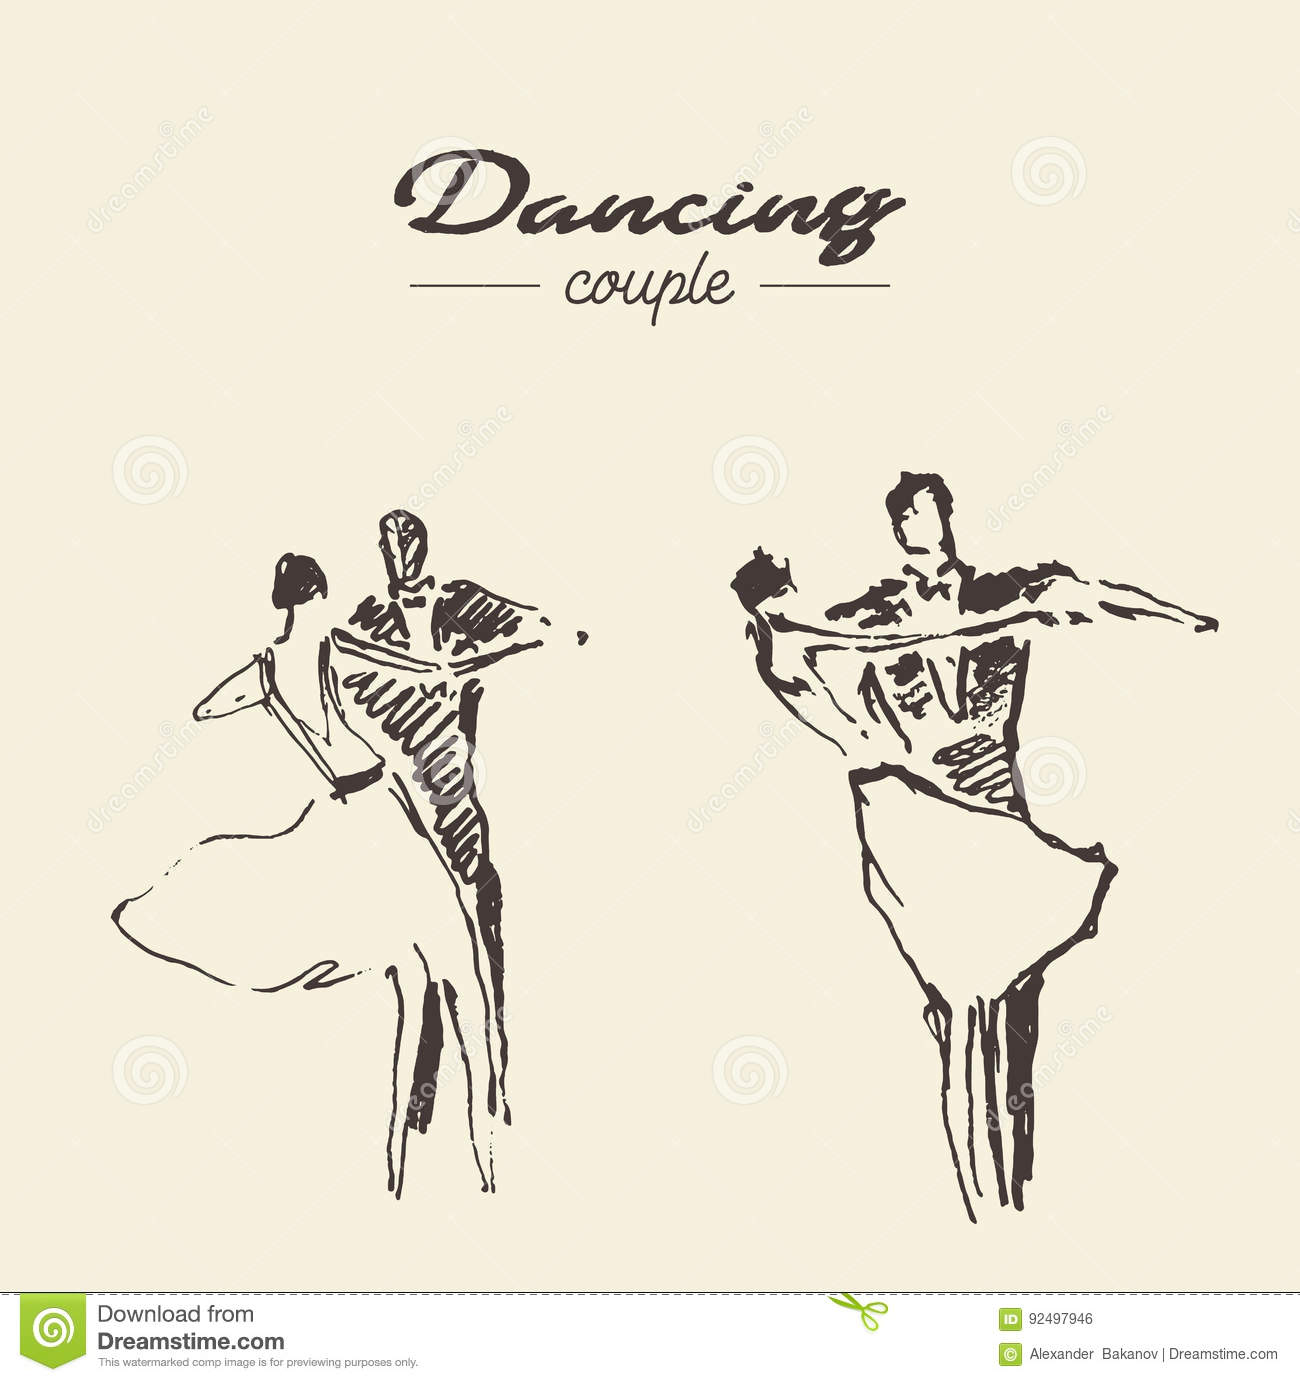 Collection of dancing couples hand drawn vector illustration sketch